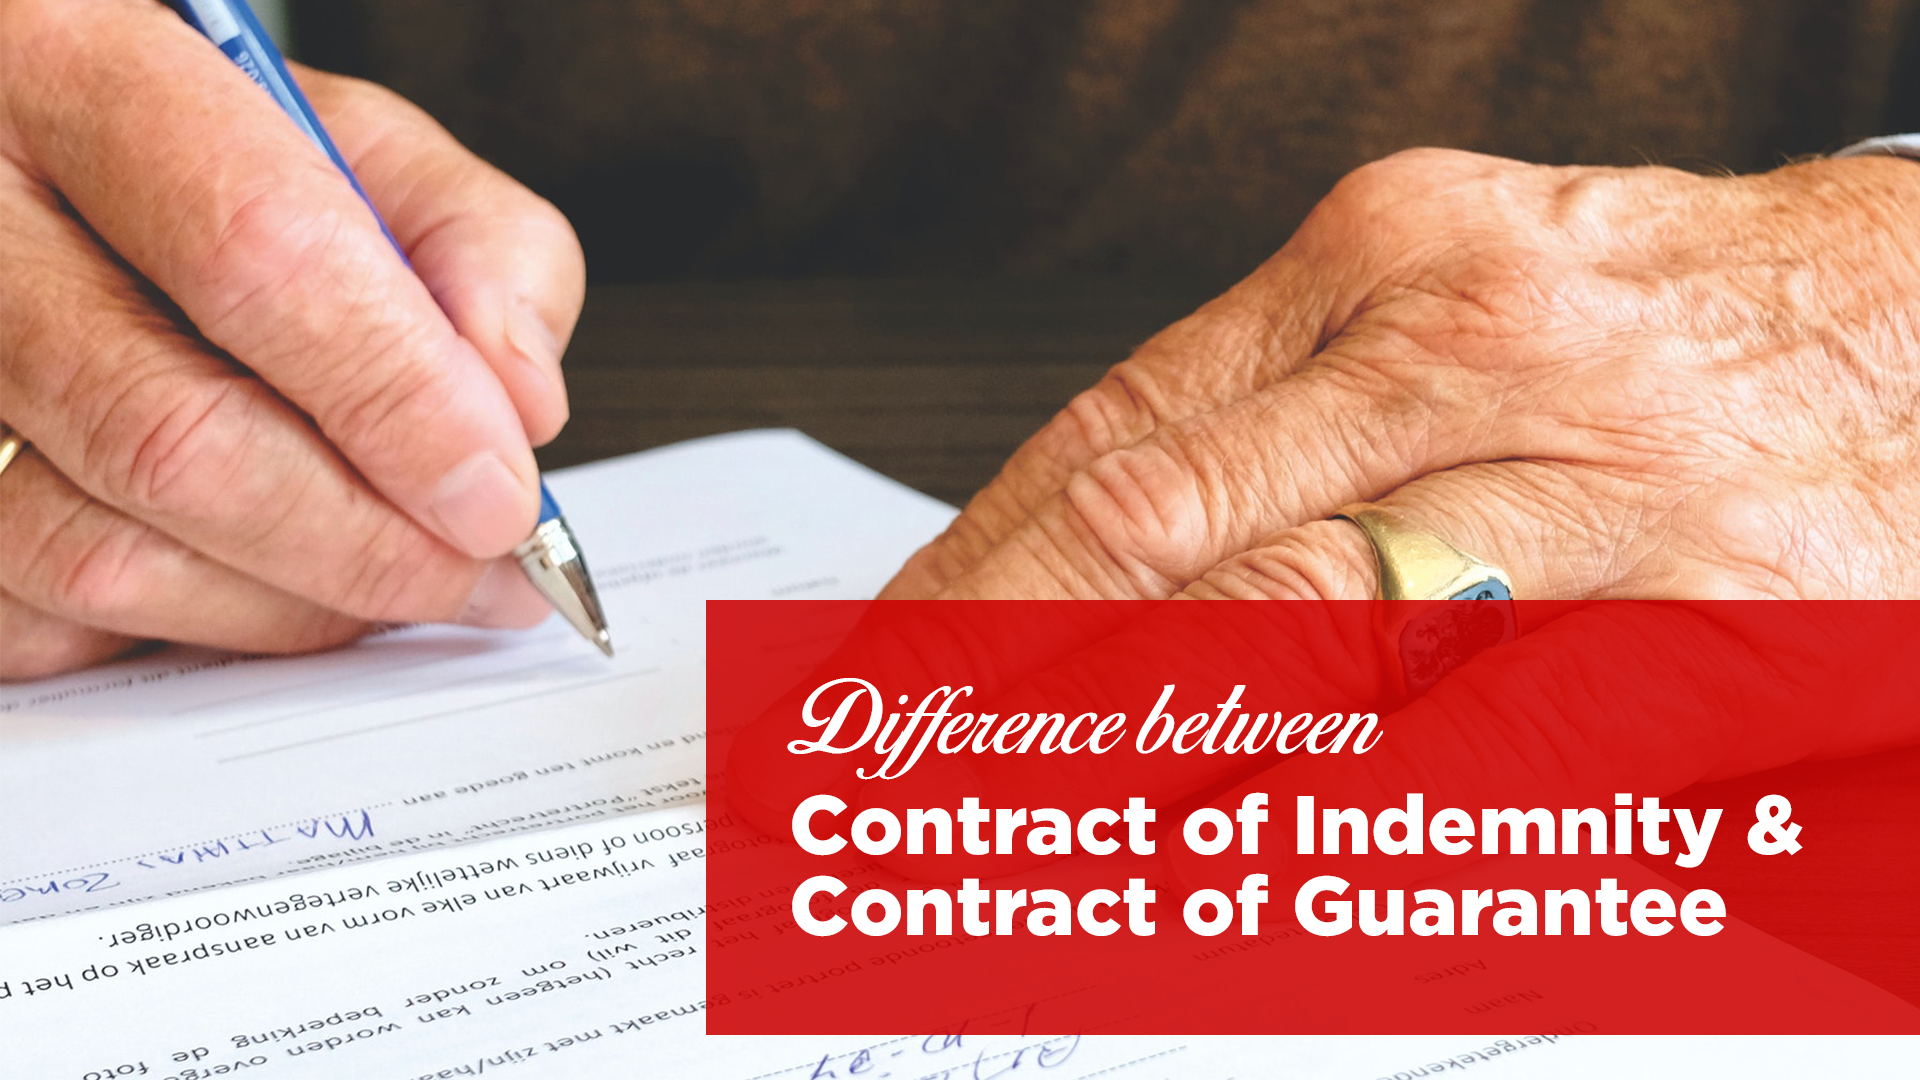 Difference between Contract of Indemnity and Contract of Guarantee